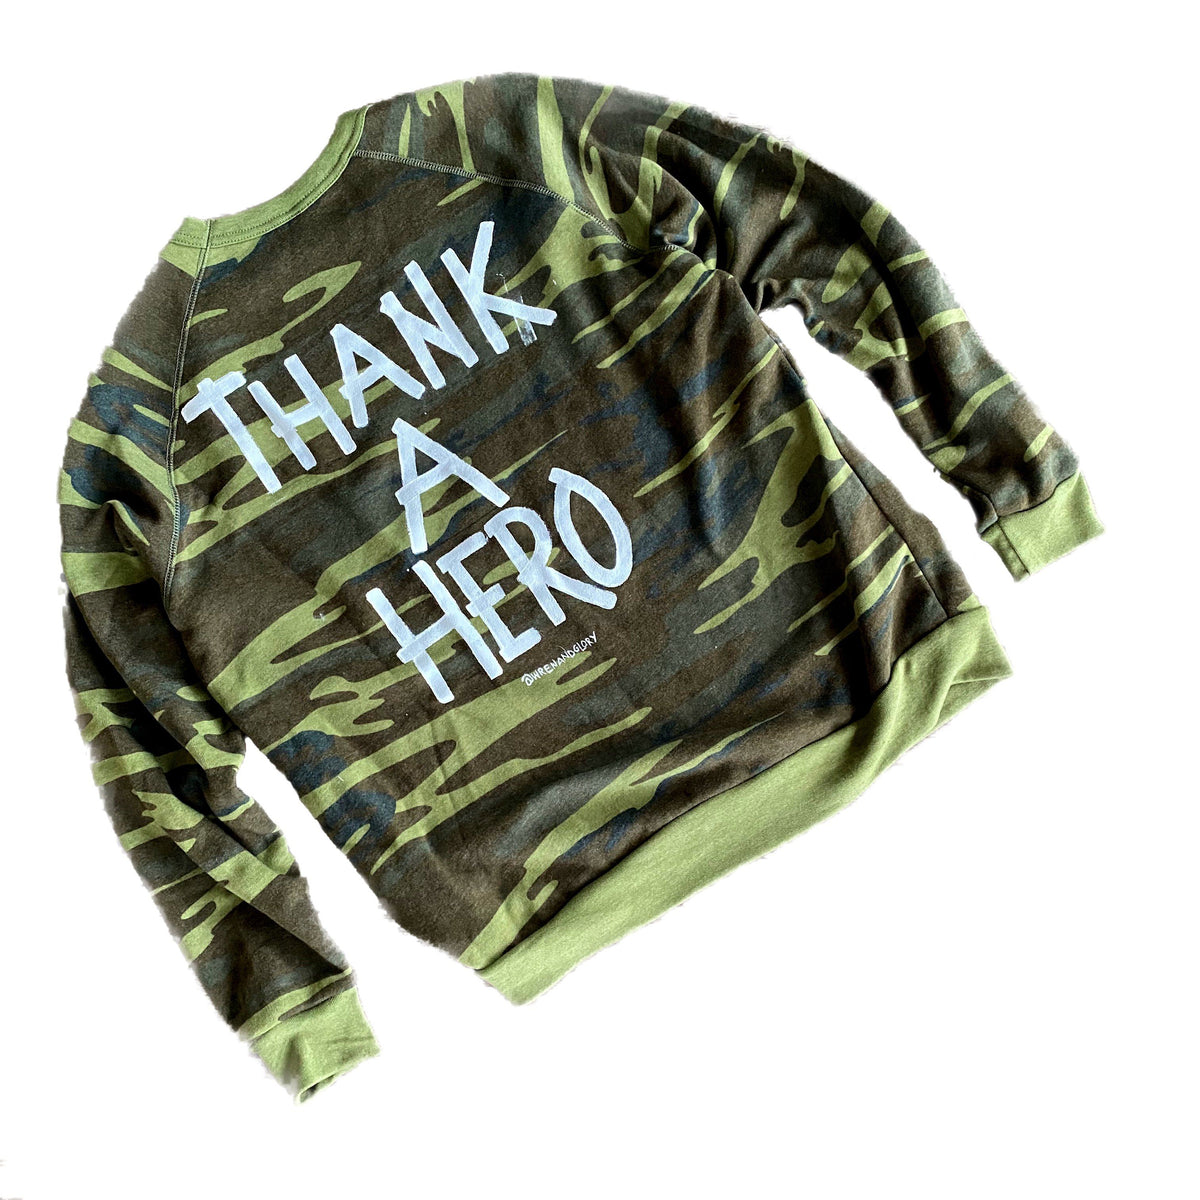 'THANK A HERO' PAINTED SWEATSHIRT